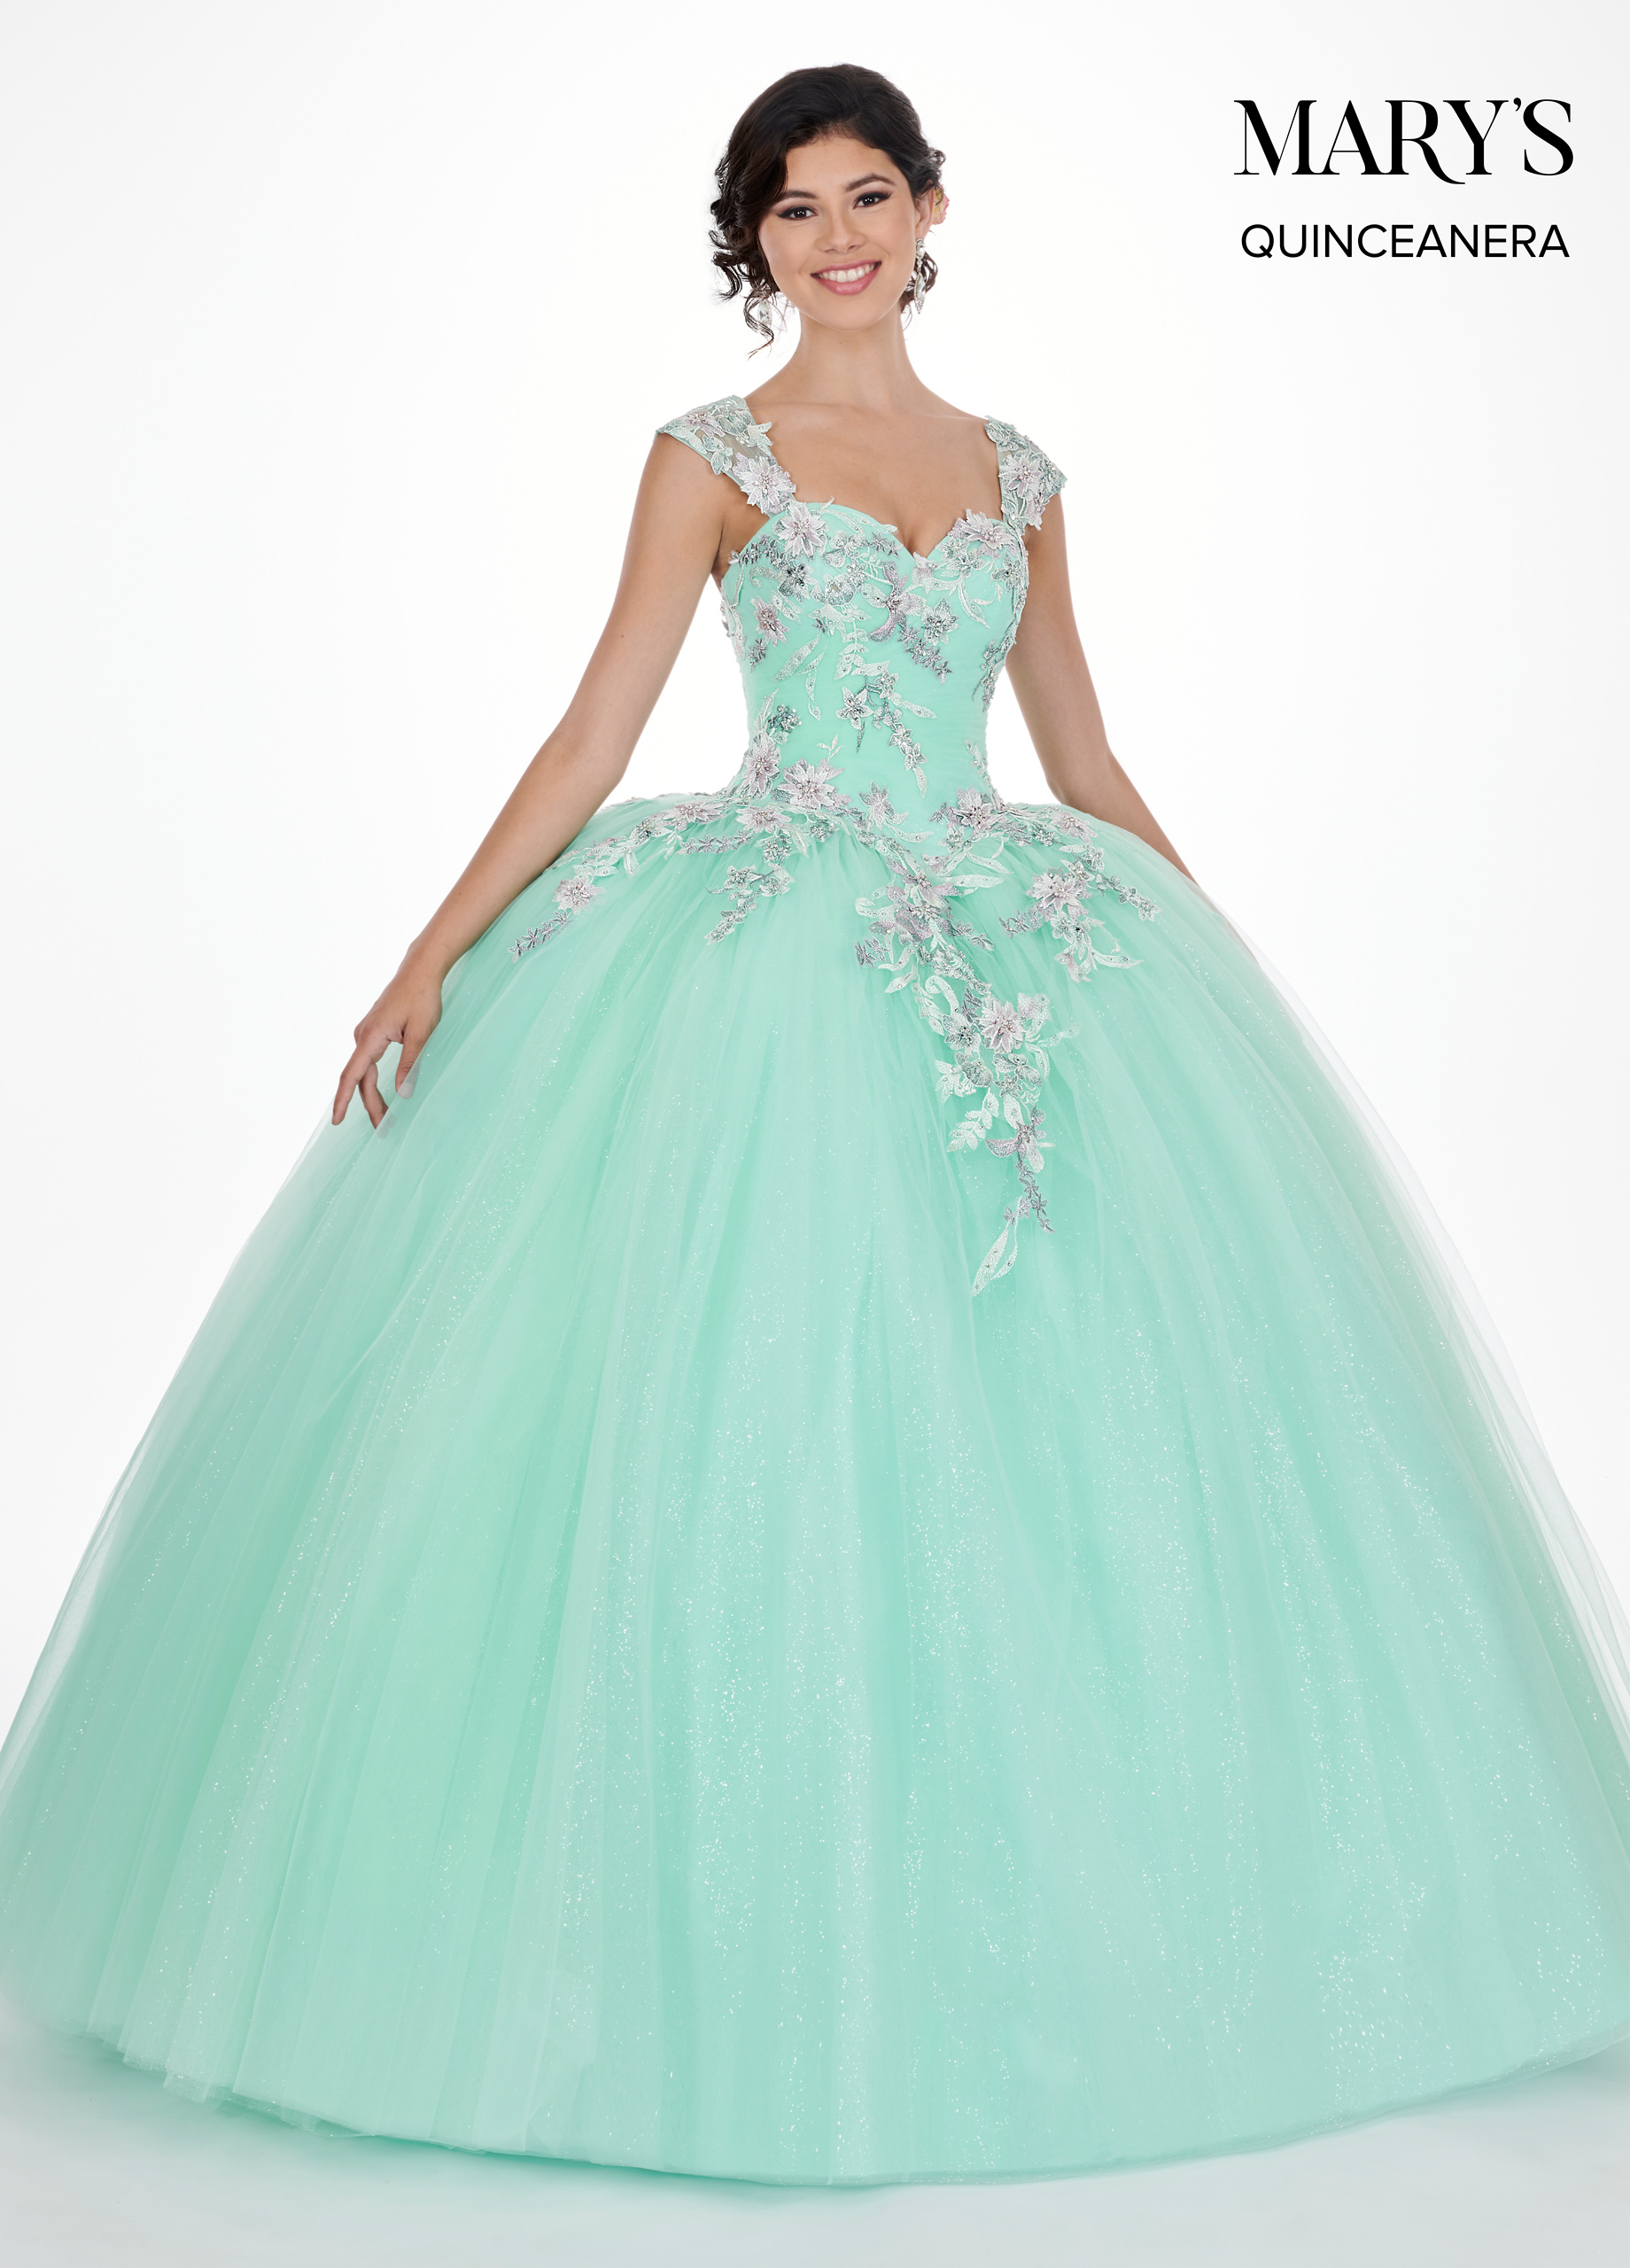 Marys Quinceanera Dresses | Mary's Quinceanera | Style - MQ2067